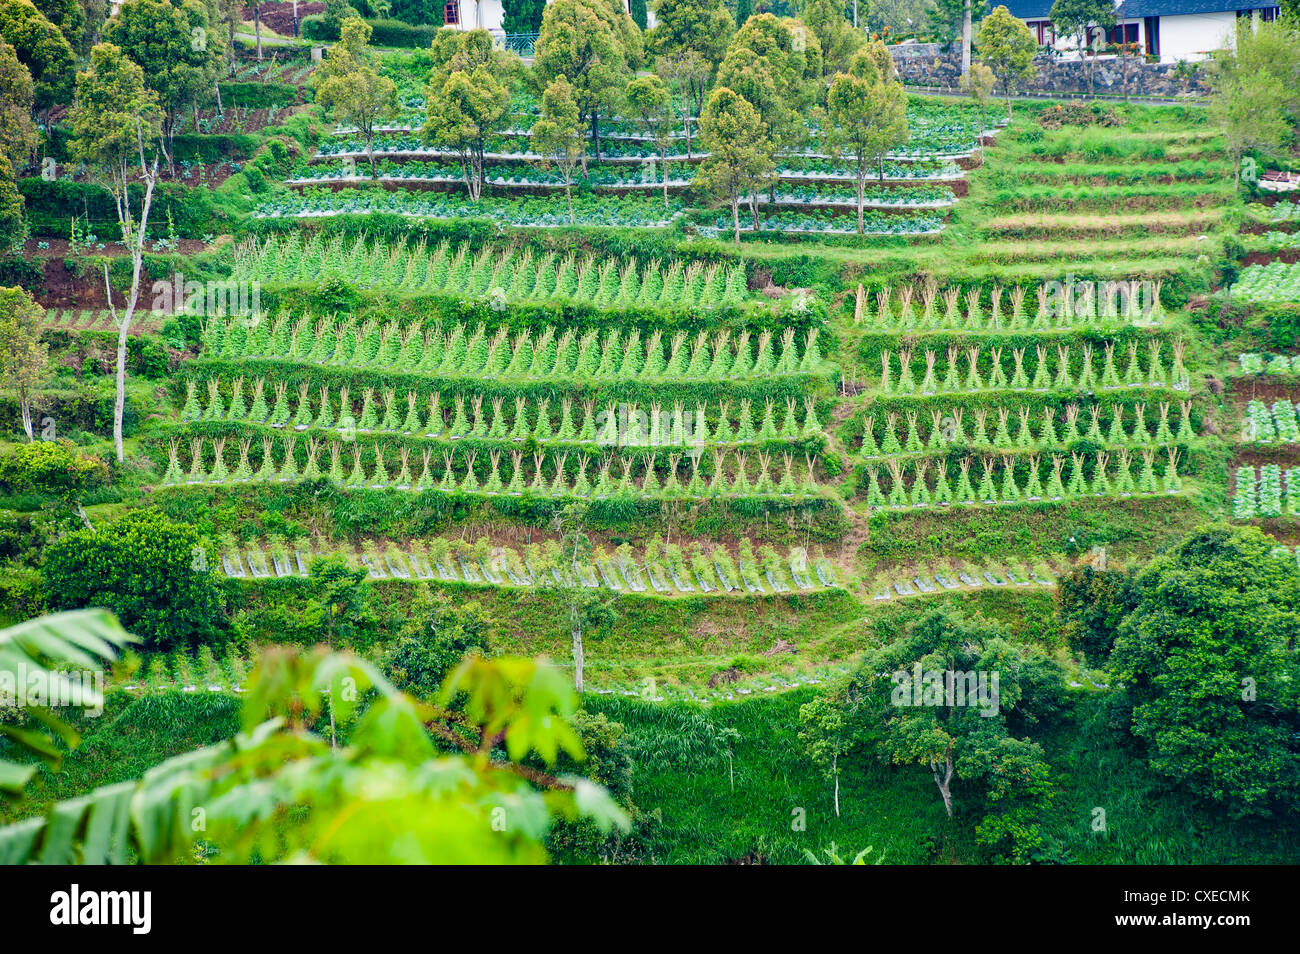 Terrasses de légumes sur une colline raide, Bandung, Java, Indonésie, Asie du Sud, Asie Photo Stock